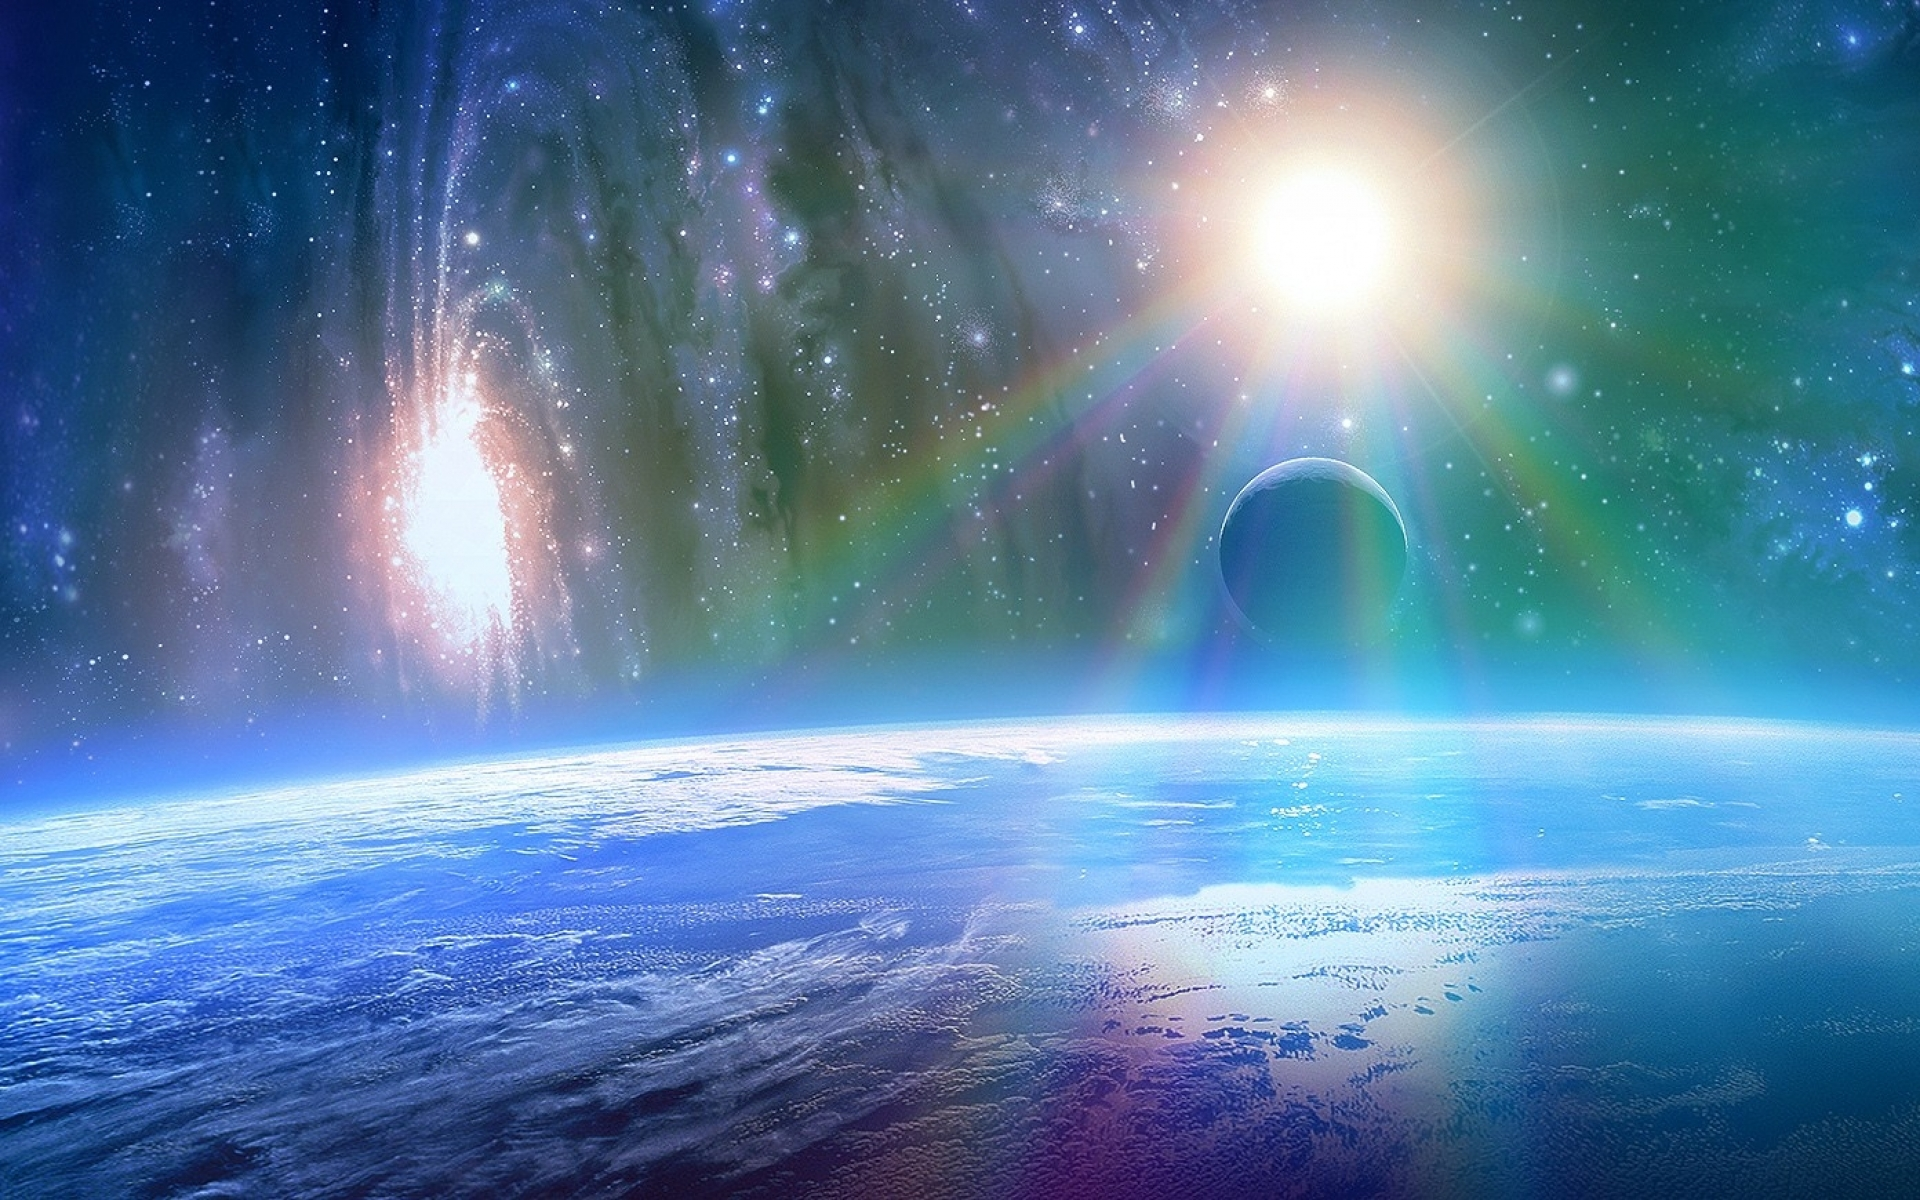 Outer Space Desktop Wallpaper: Outer Space Wallpapers For PC